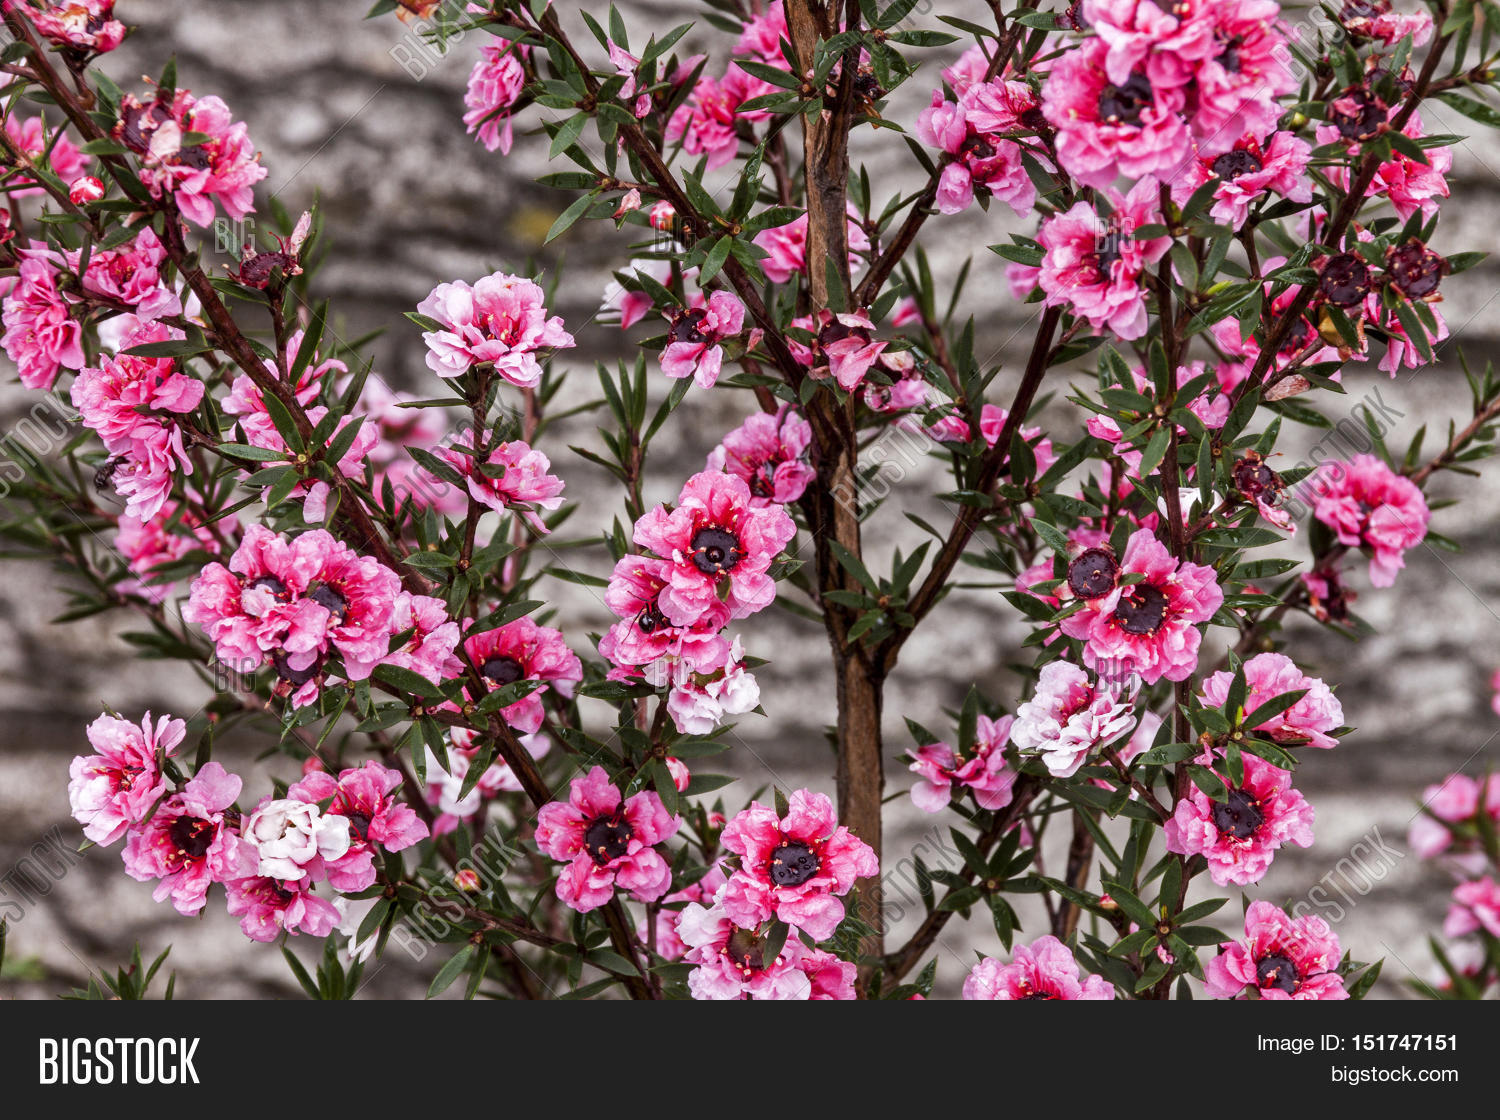 Tiny pink flowers image photo free trial bigstock tiny pink flowers of the australian tea bush mightylinksfo